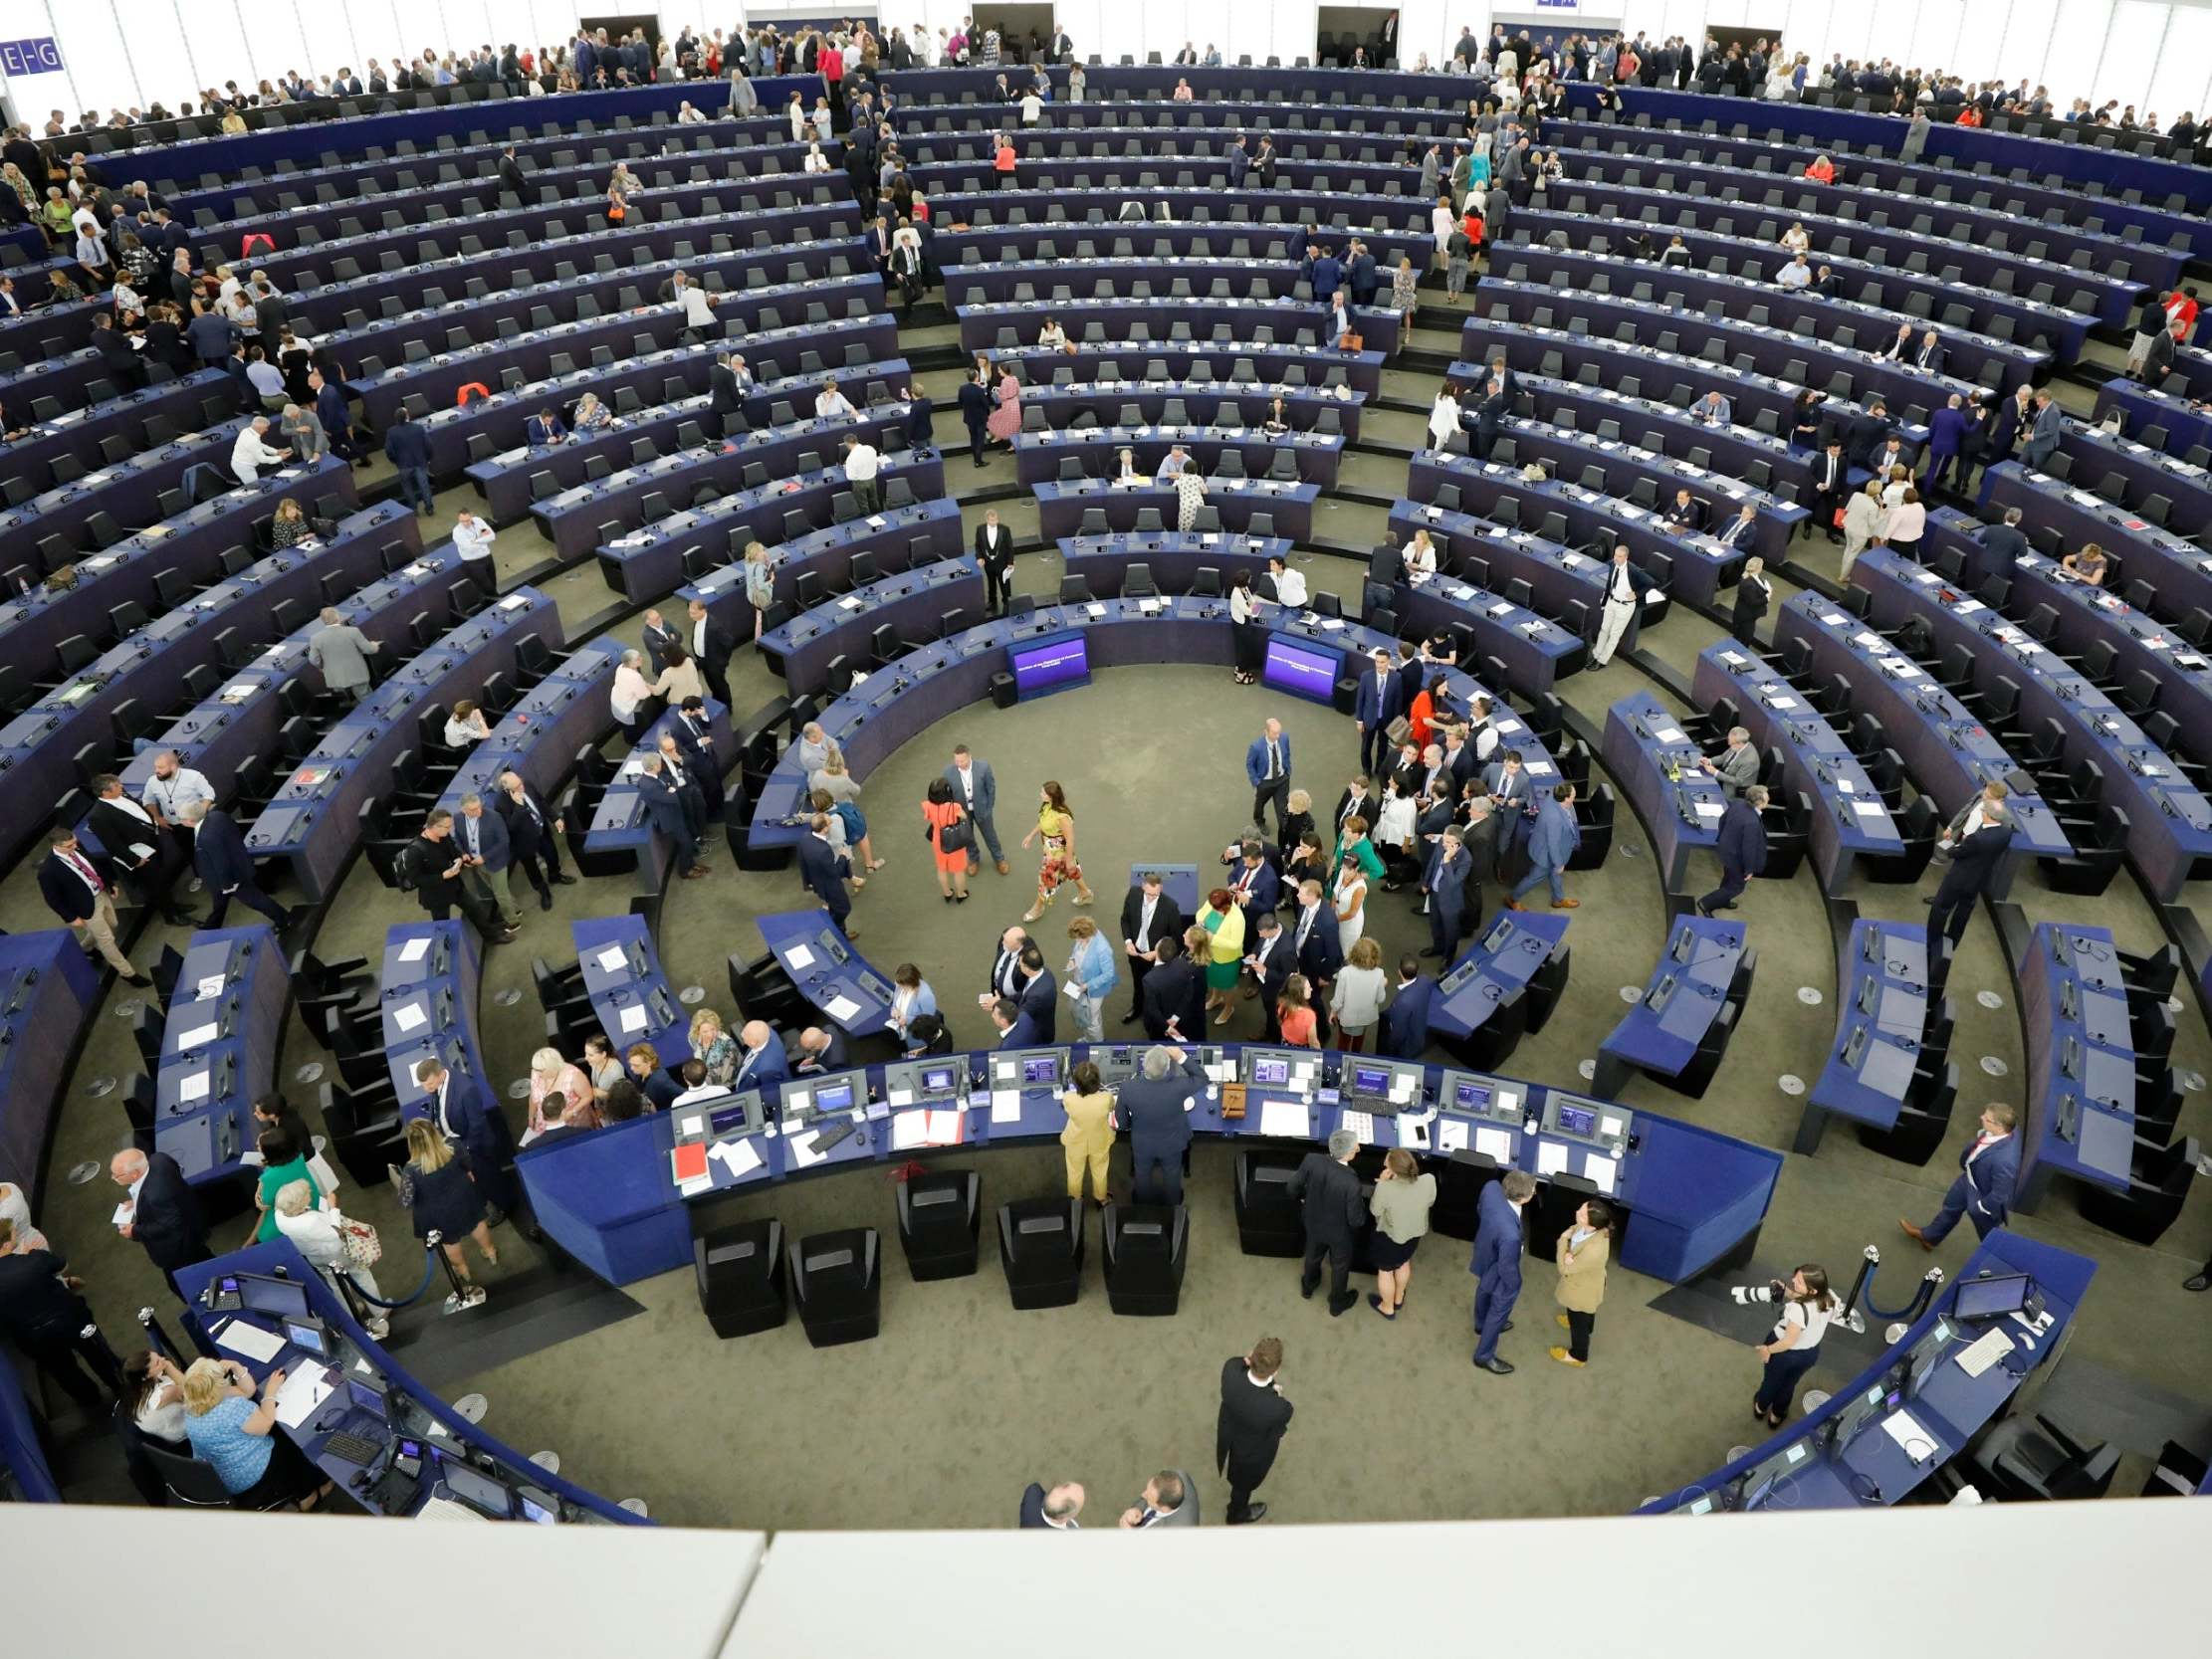 This is not democracy': European parliament unites to